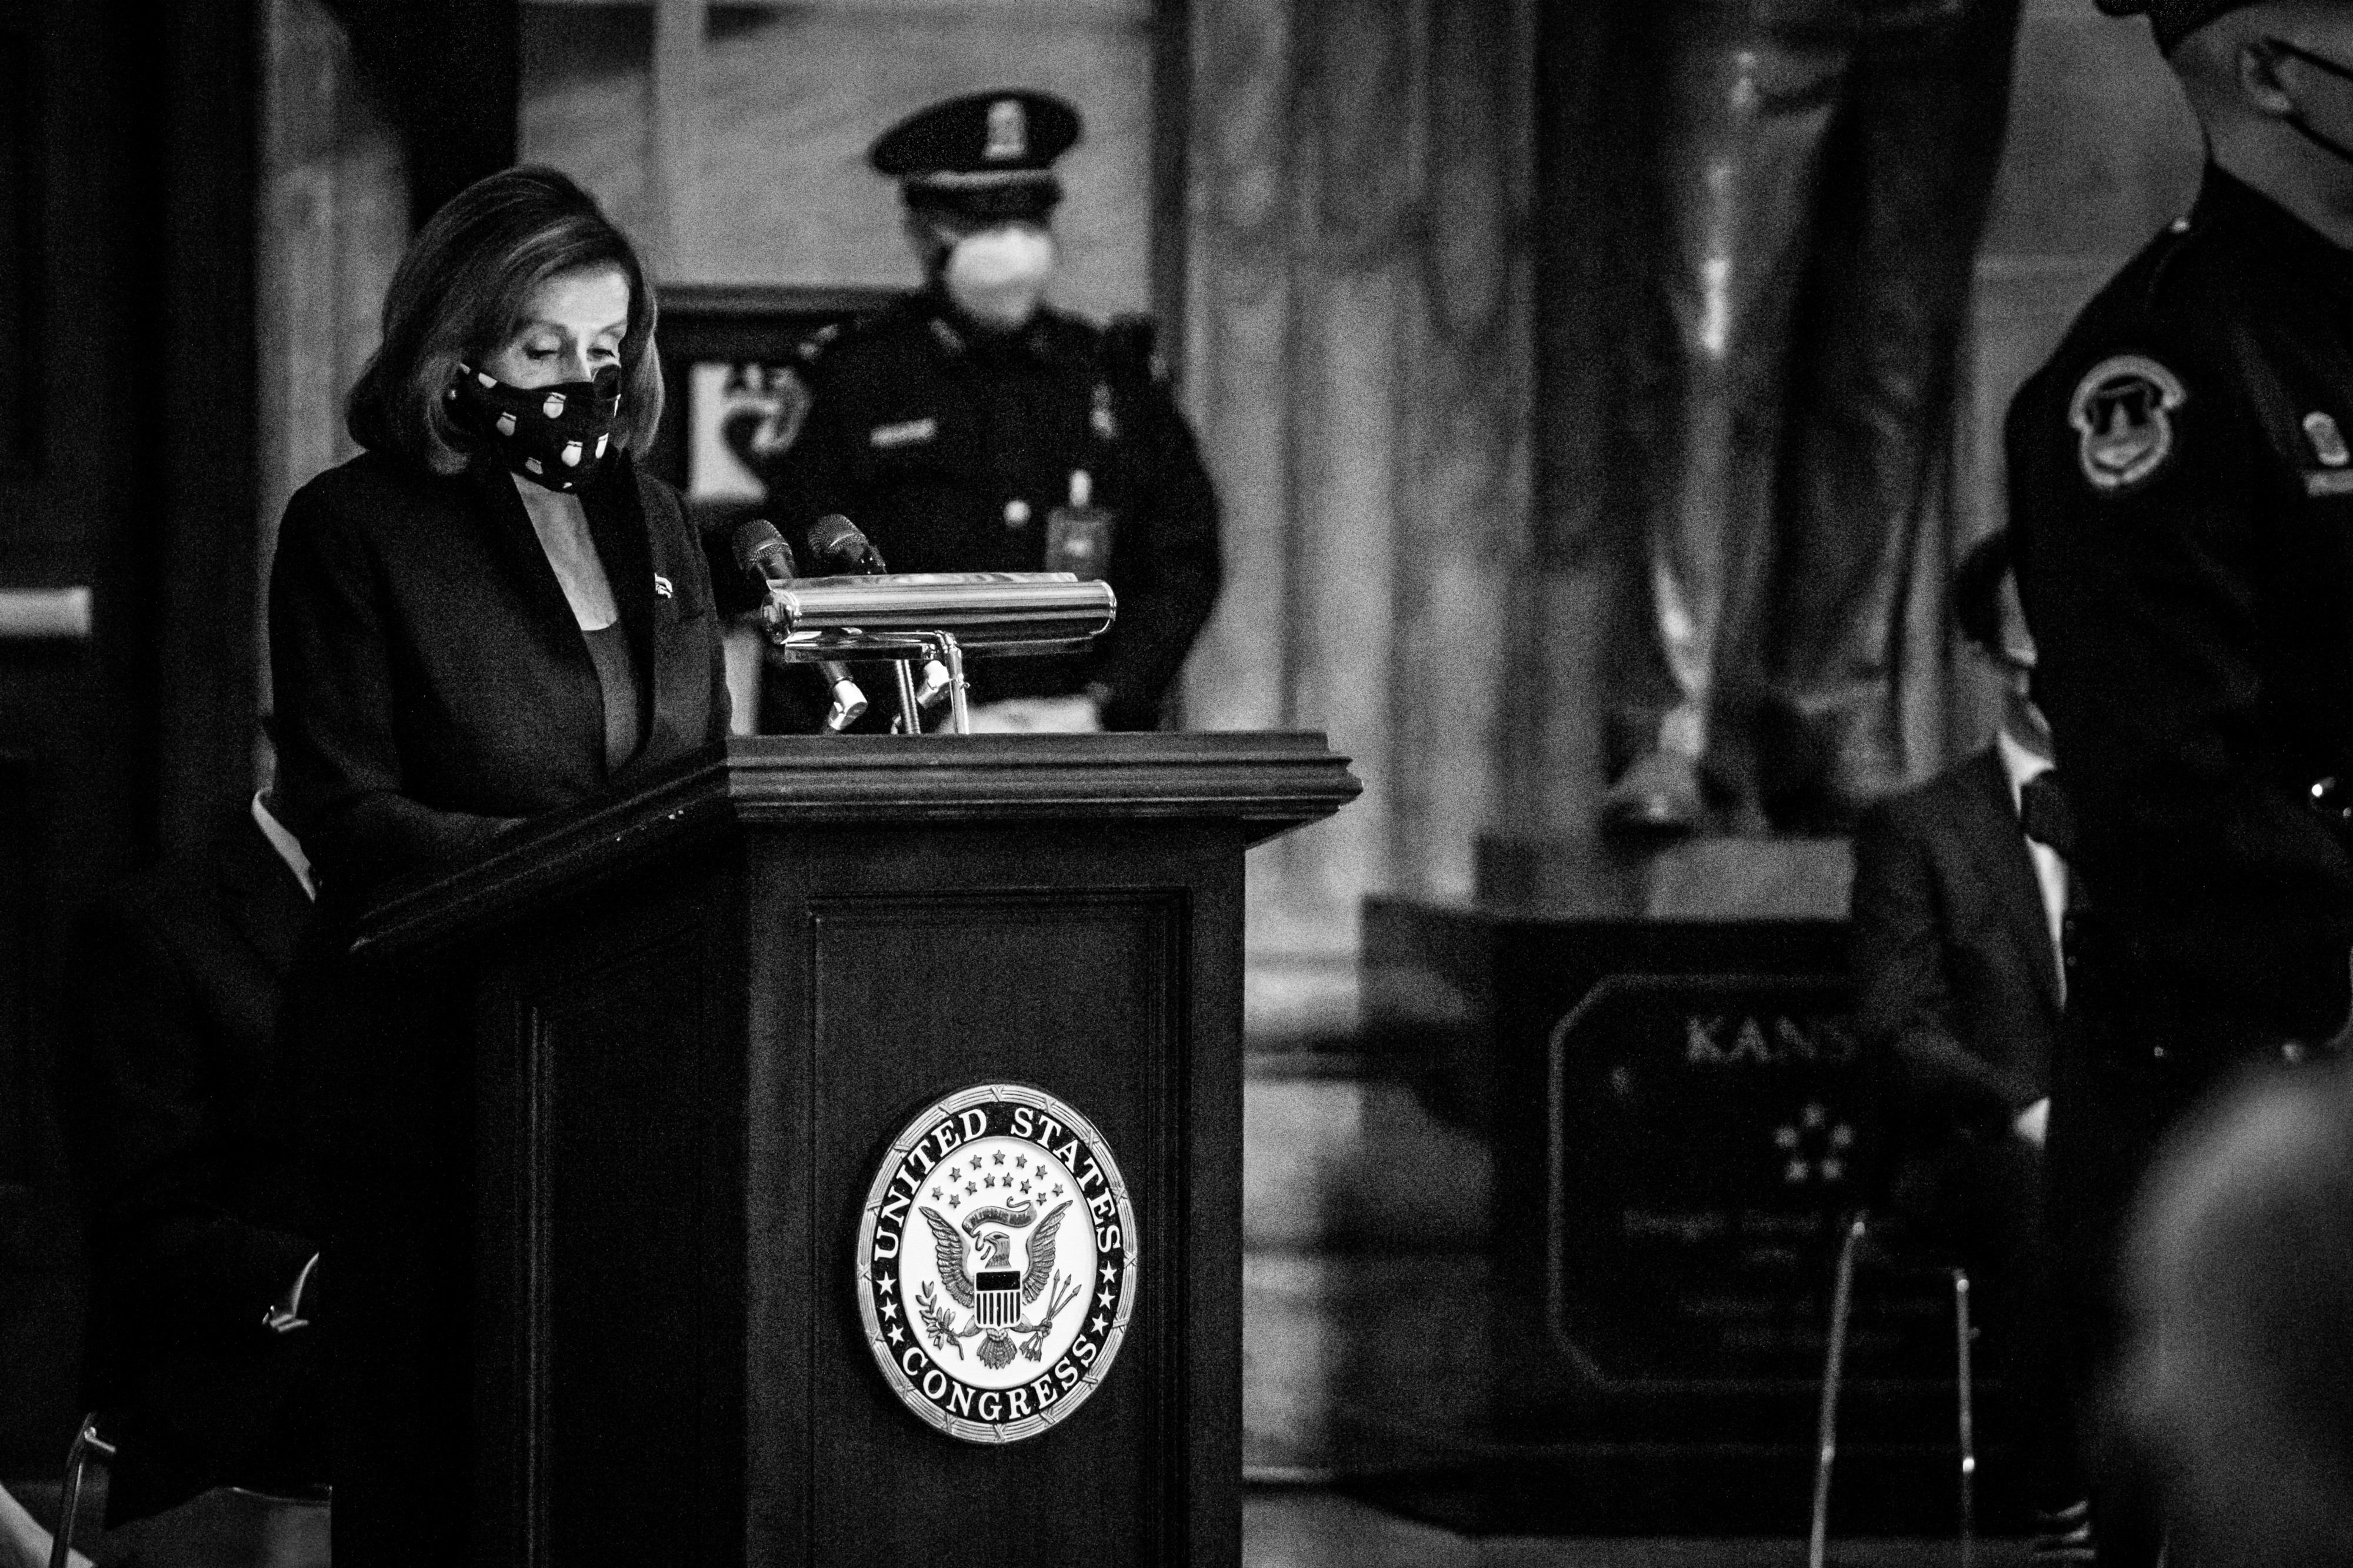 Behind-the-scenes photos of the week April 12–16, 2021. United States Capitol, Washington, DC